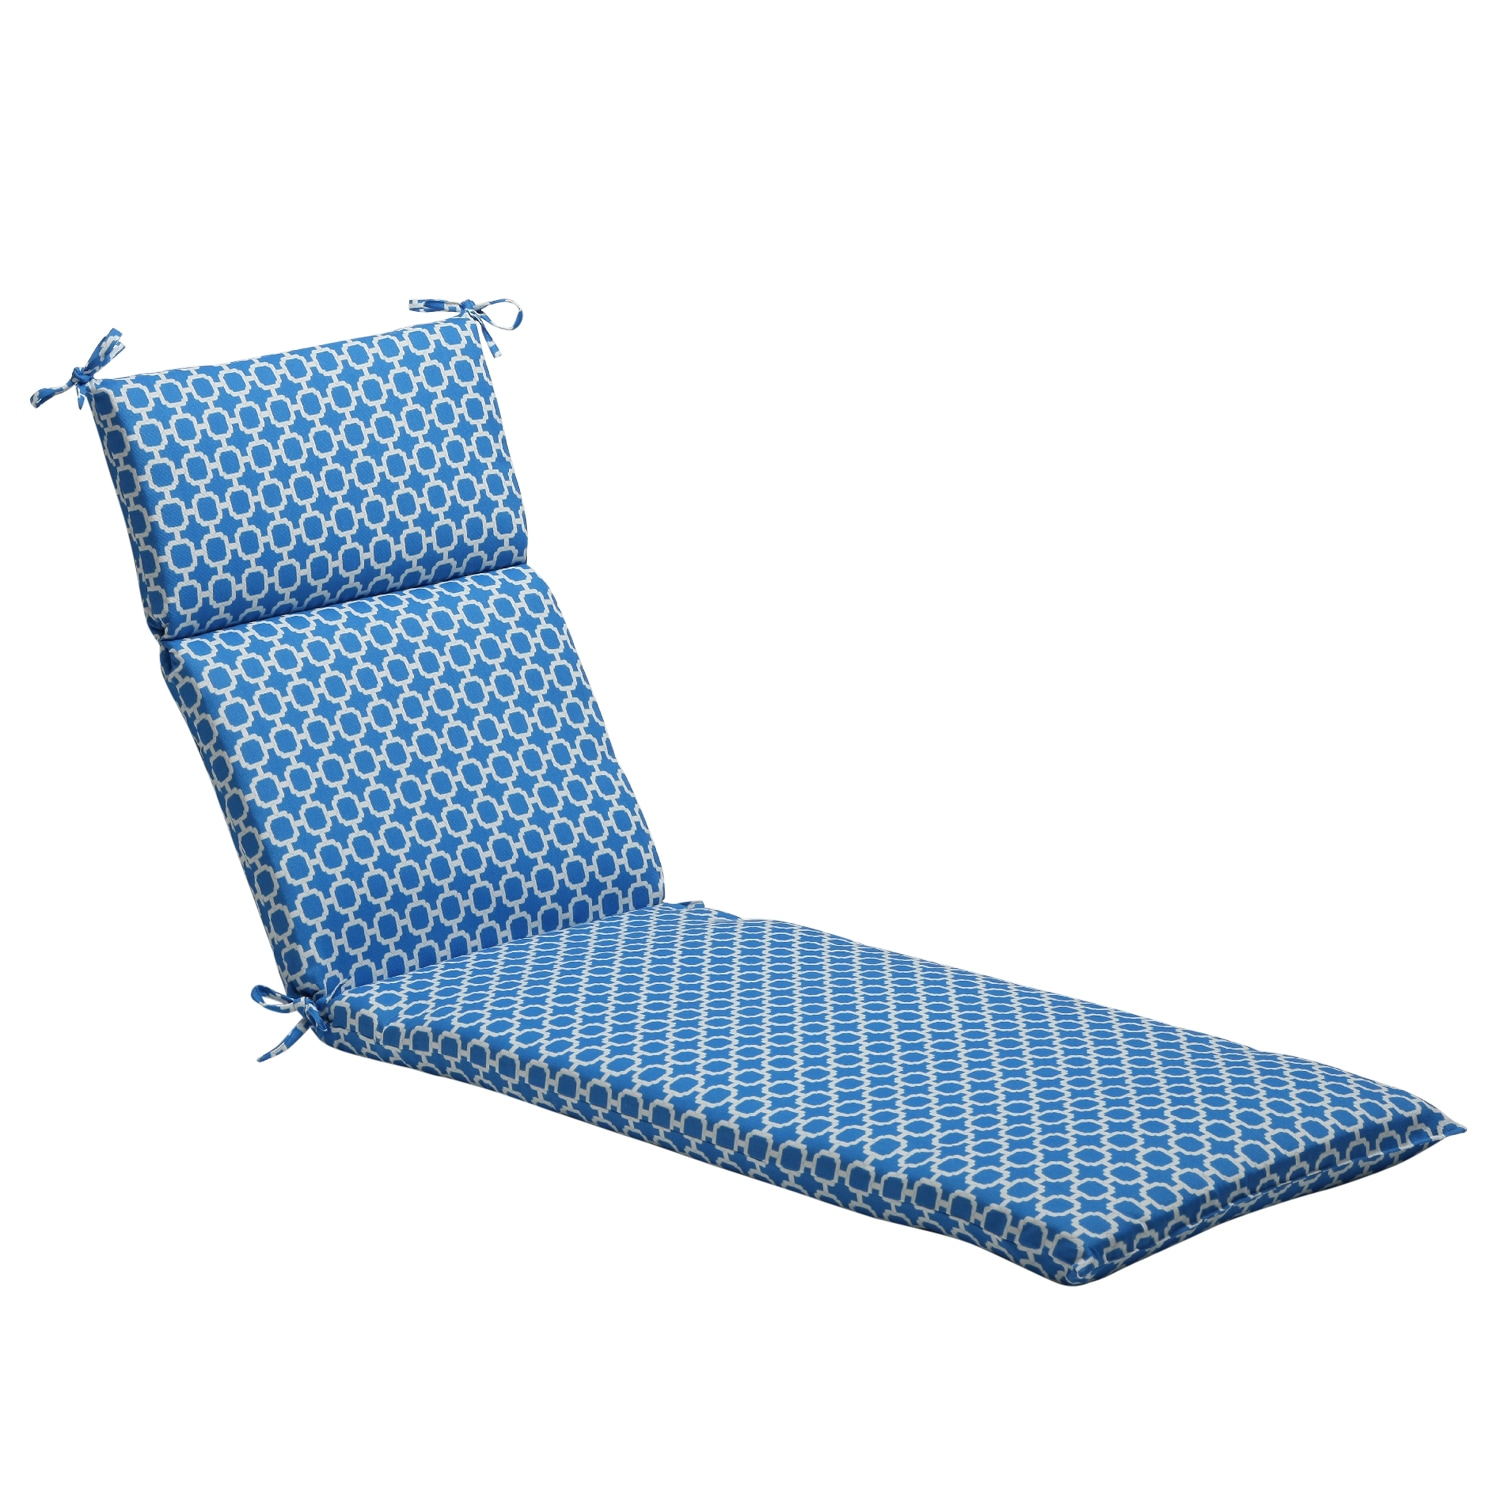 Pillow Perfect Blue White Geometric Outdoor Chaise Lounge